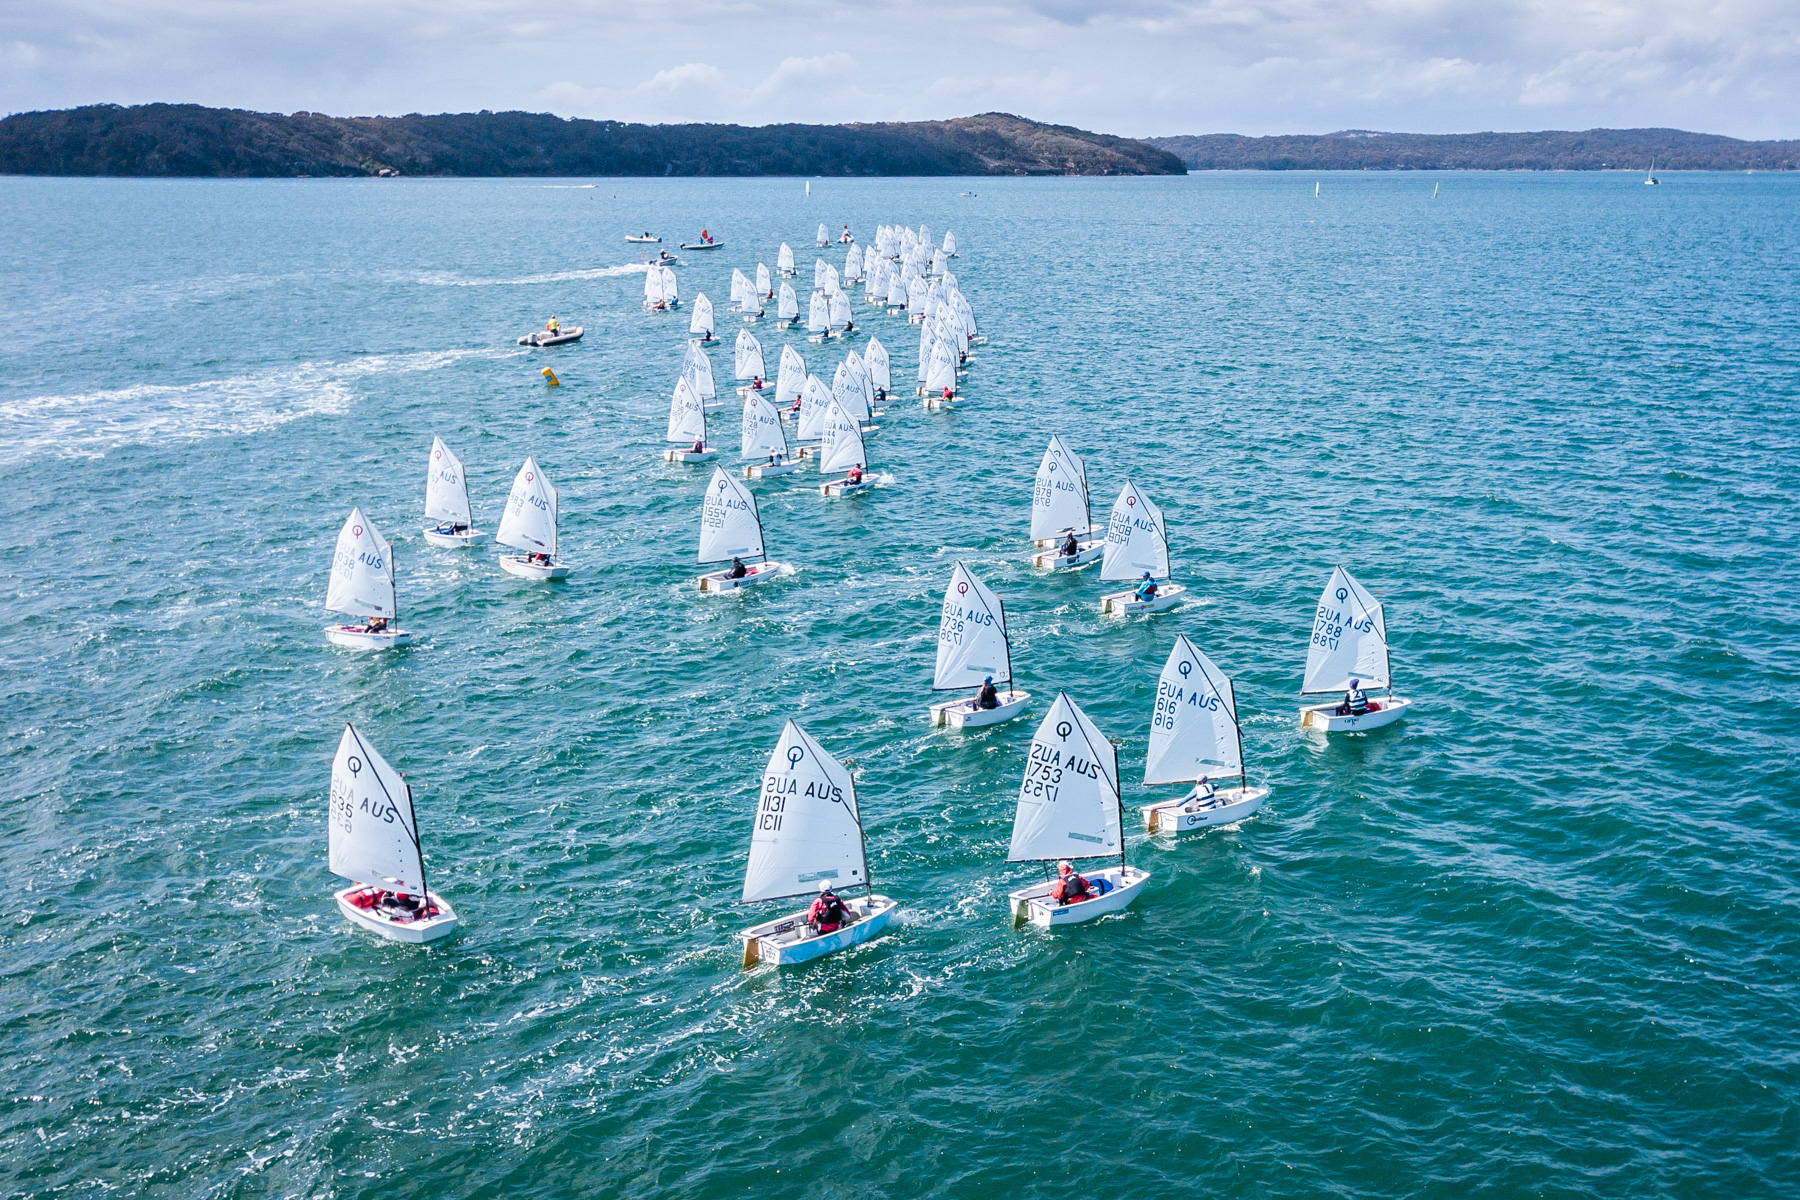 Drone shot of the Optimist start - Beau Outteridge pic